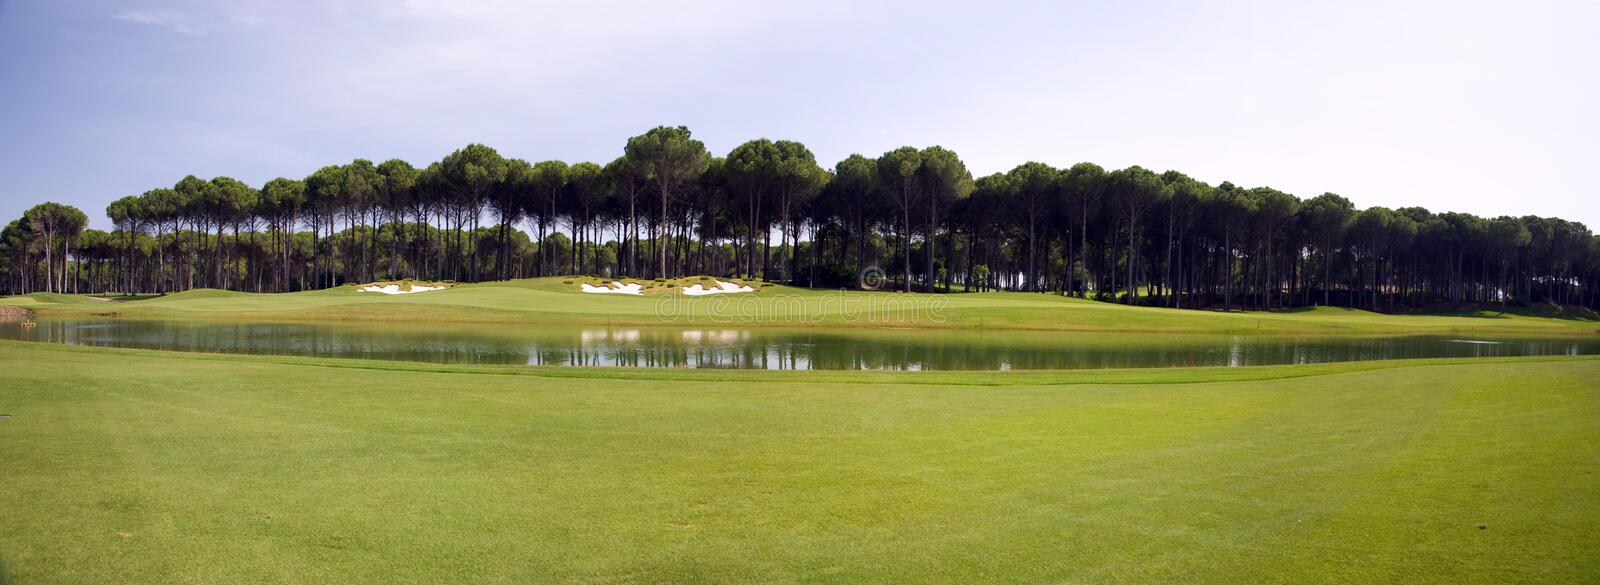 Download Panorama Of Golf Club, Green Grass Stock Image - Image: 14857195